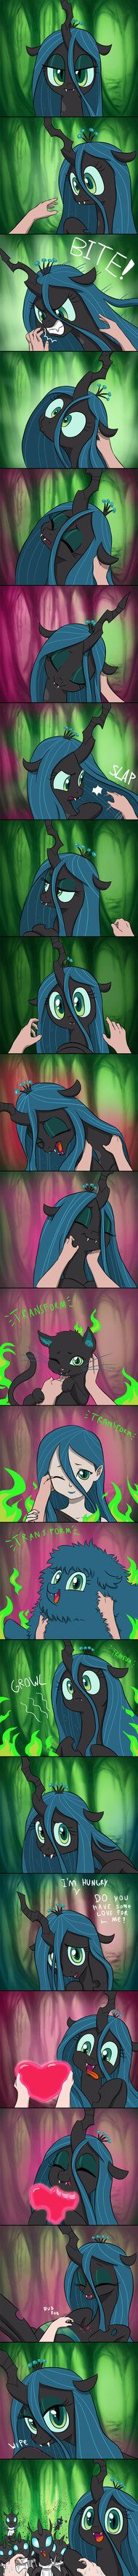 Chrysalis Simulator by doubleWbrothers on deviantART